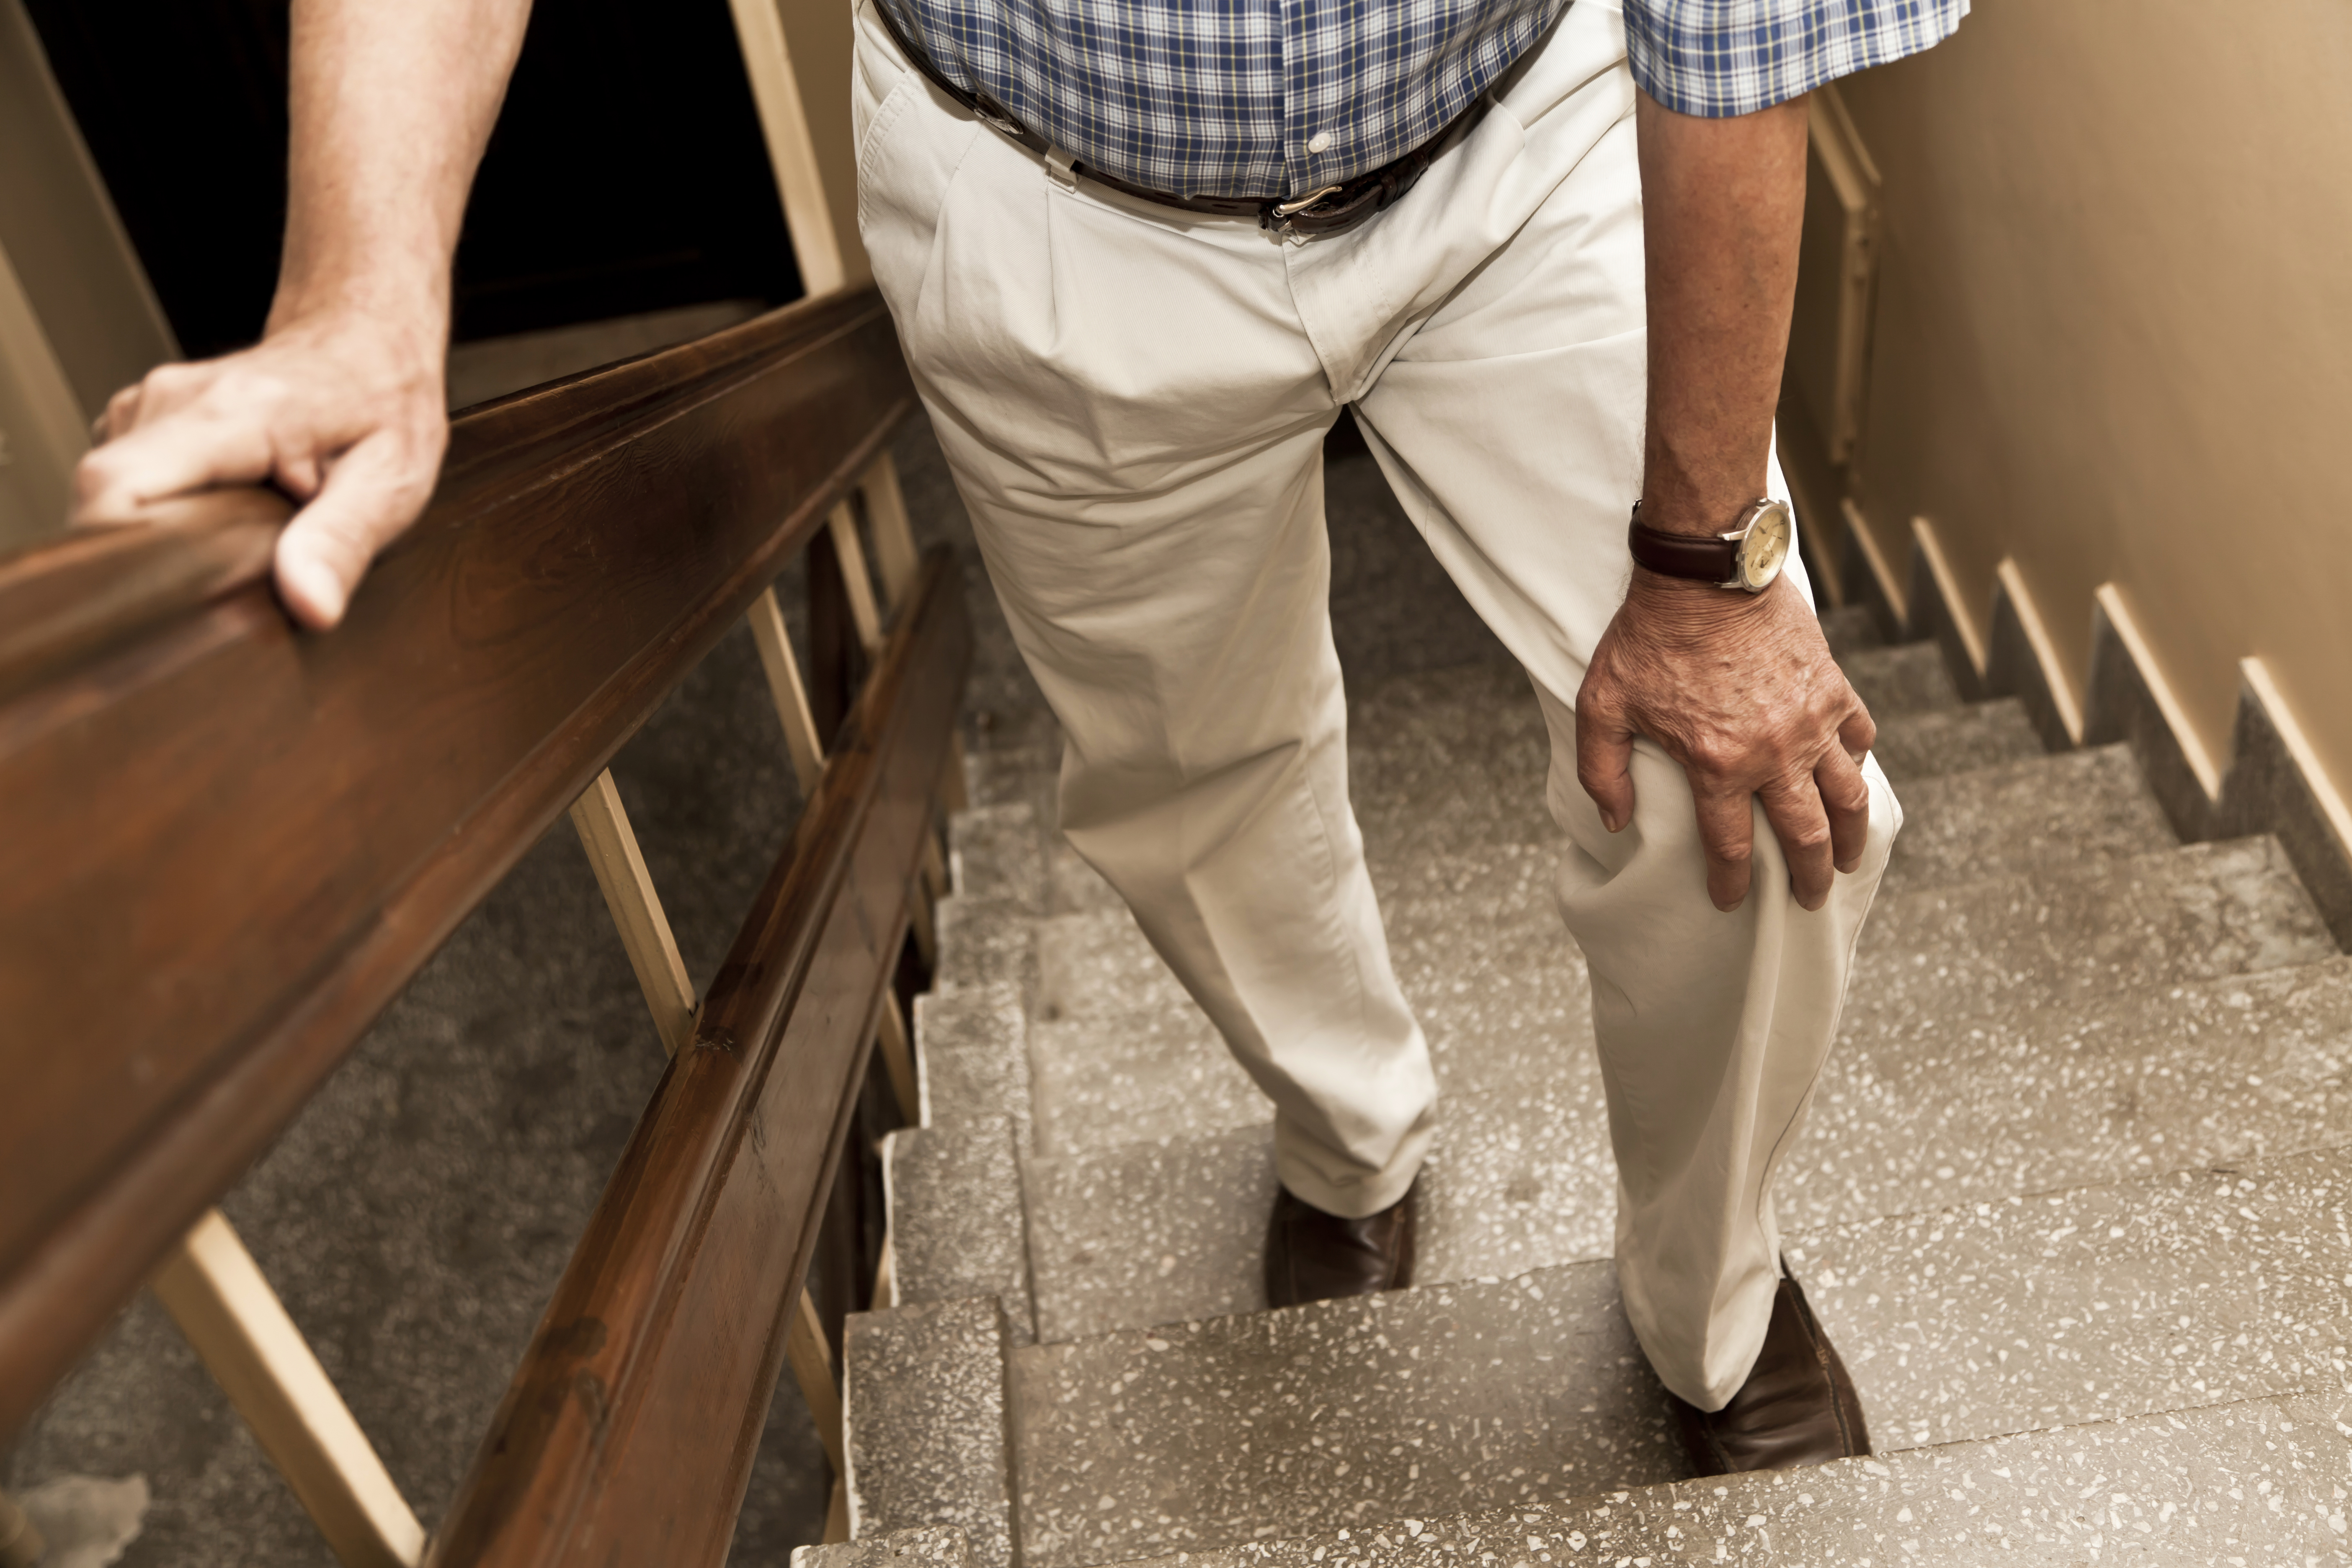 What Causes Knee Pain When Climbing Stairs But Not Walking?